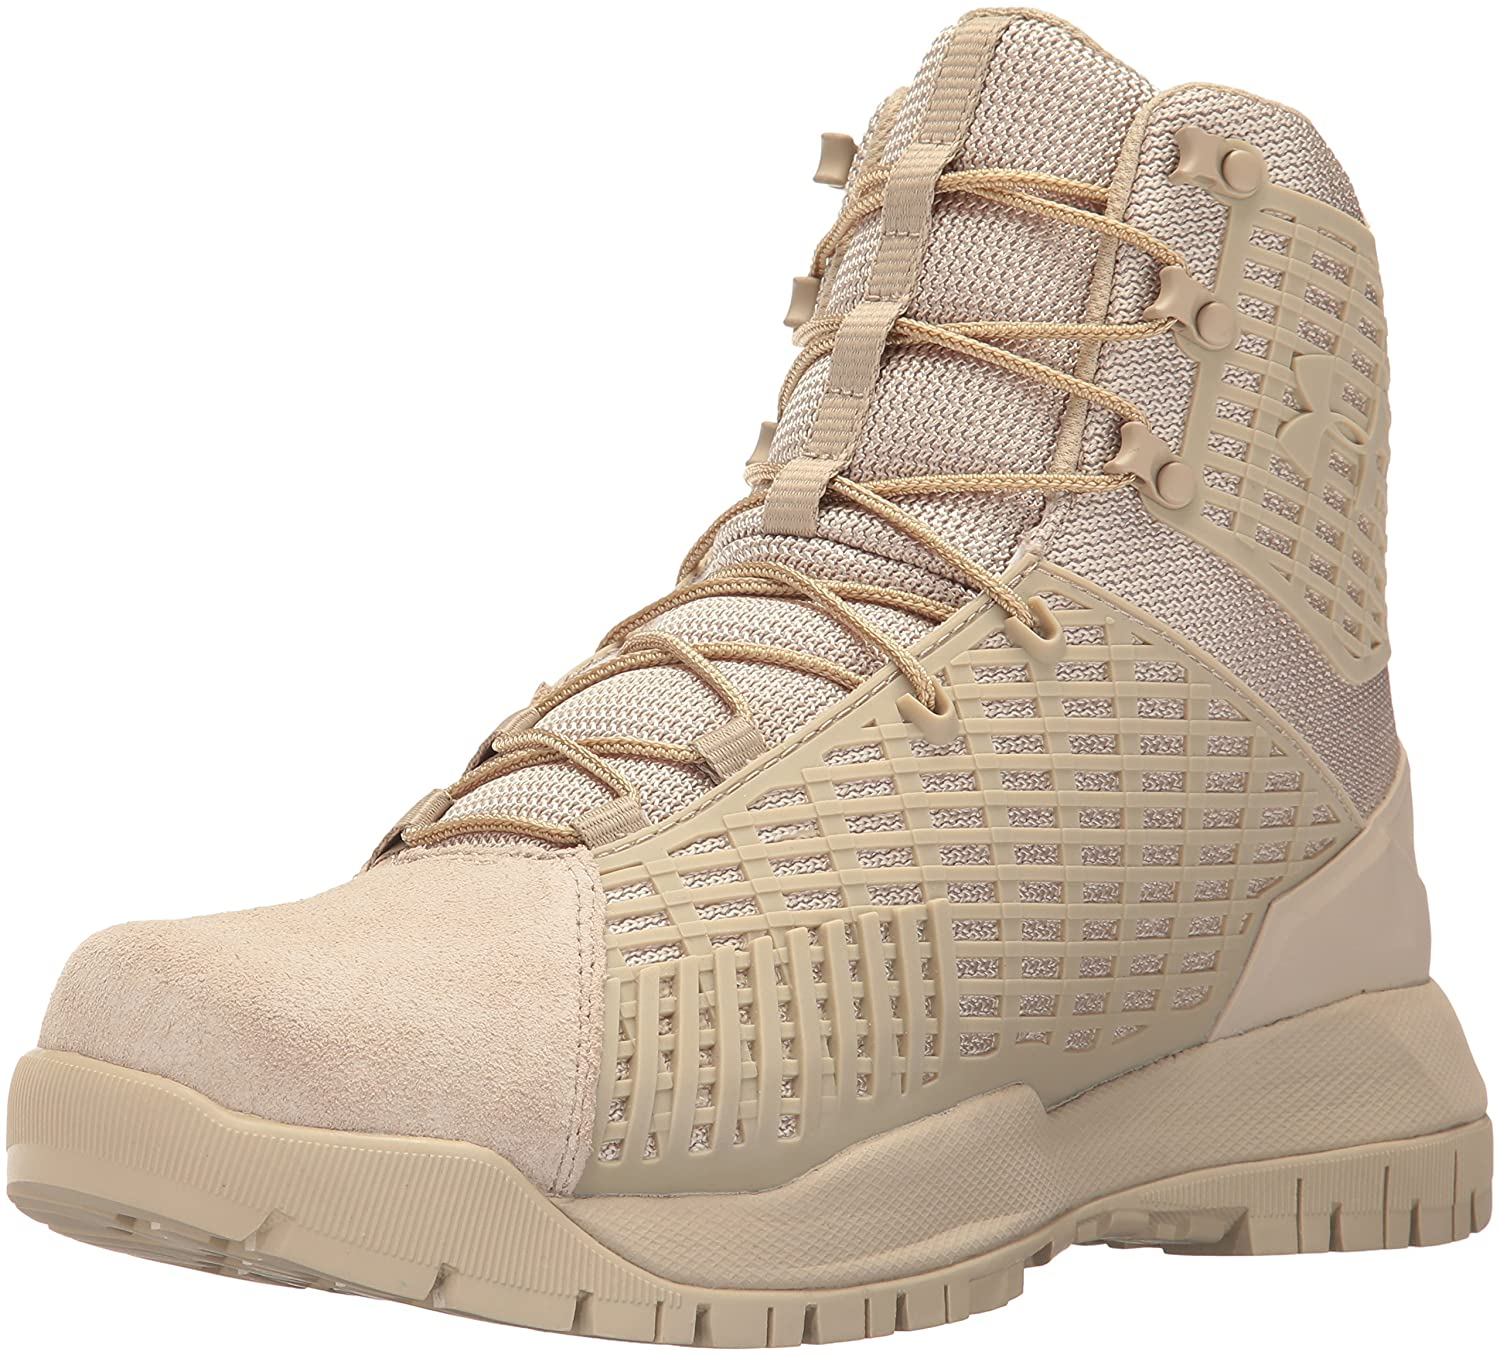 b98d5bdc1e7 Under Armour Men's Stryker Military and Tactical Boot